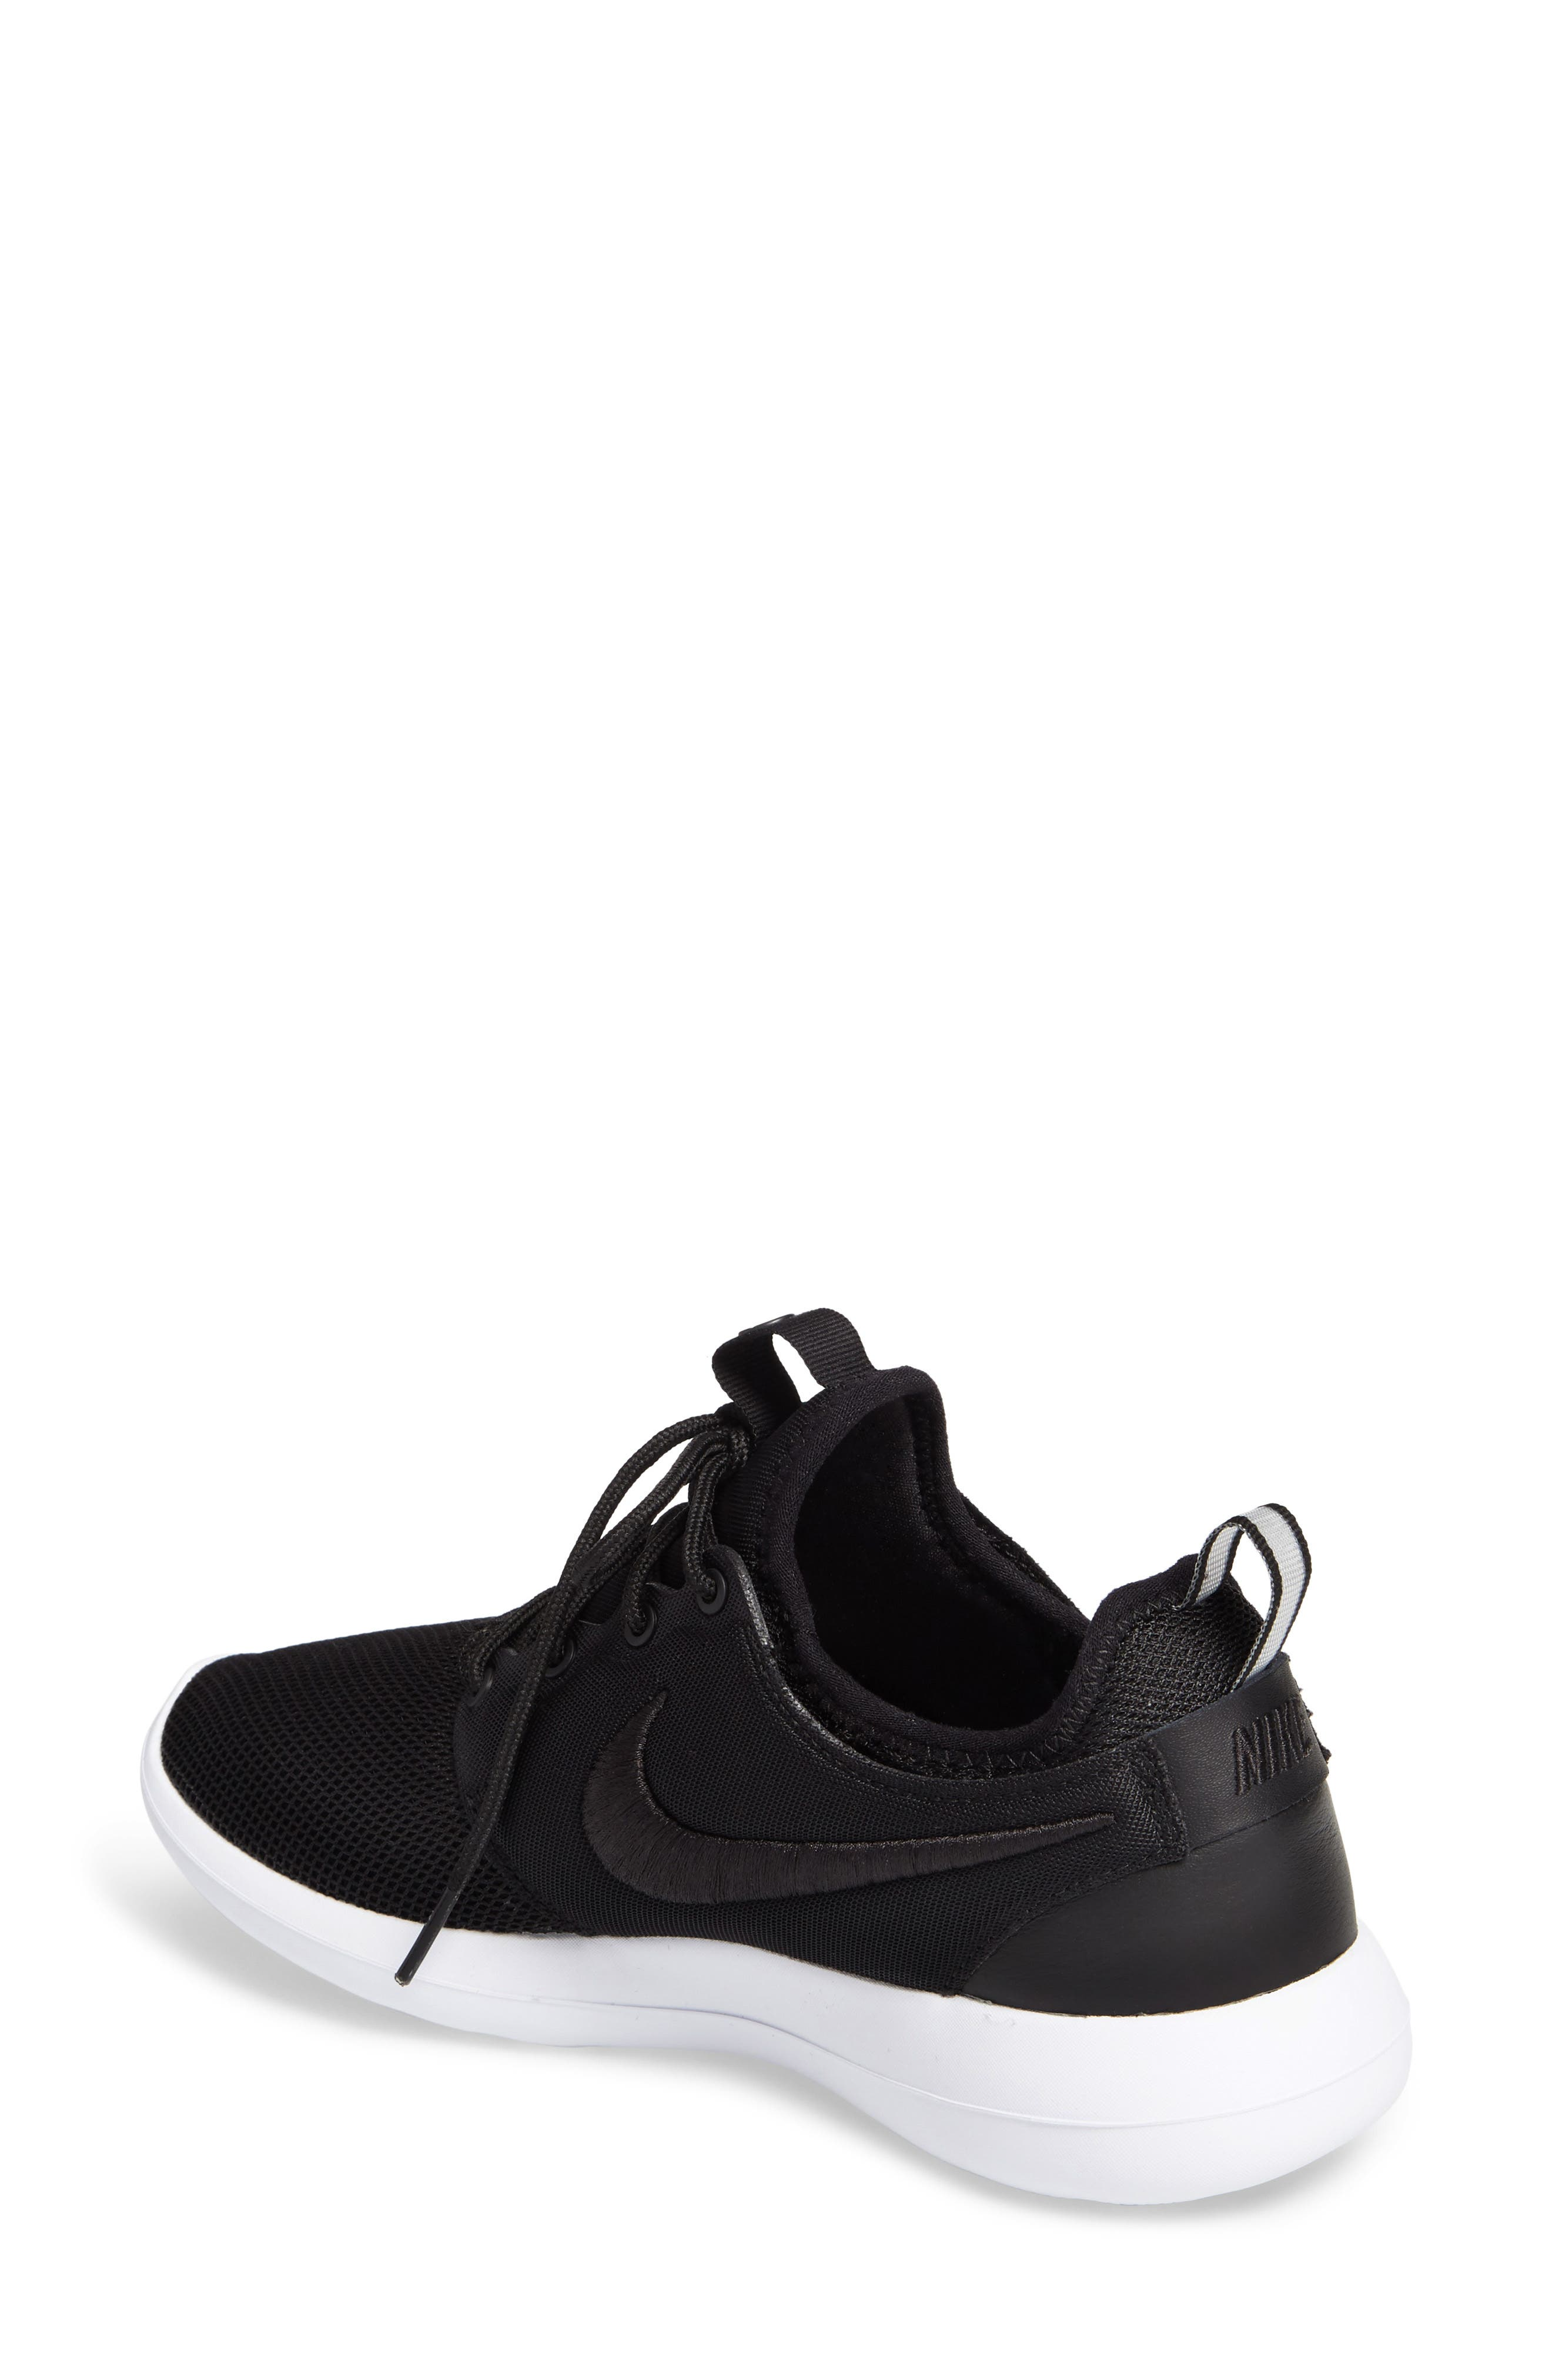 Roshe Two Breathe Sneaker,                             Alternate thumbnail 2, color,                             001